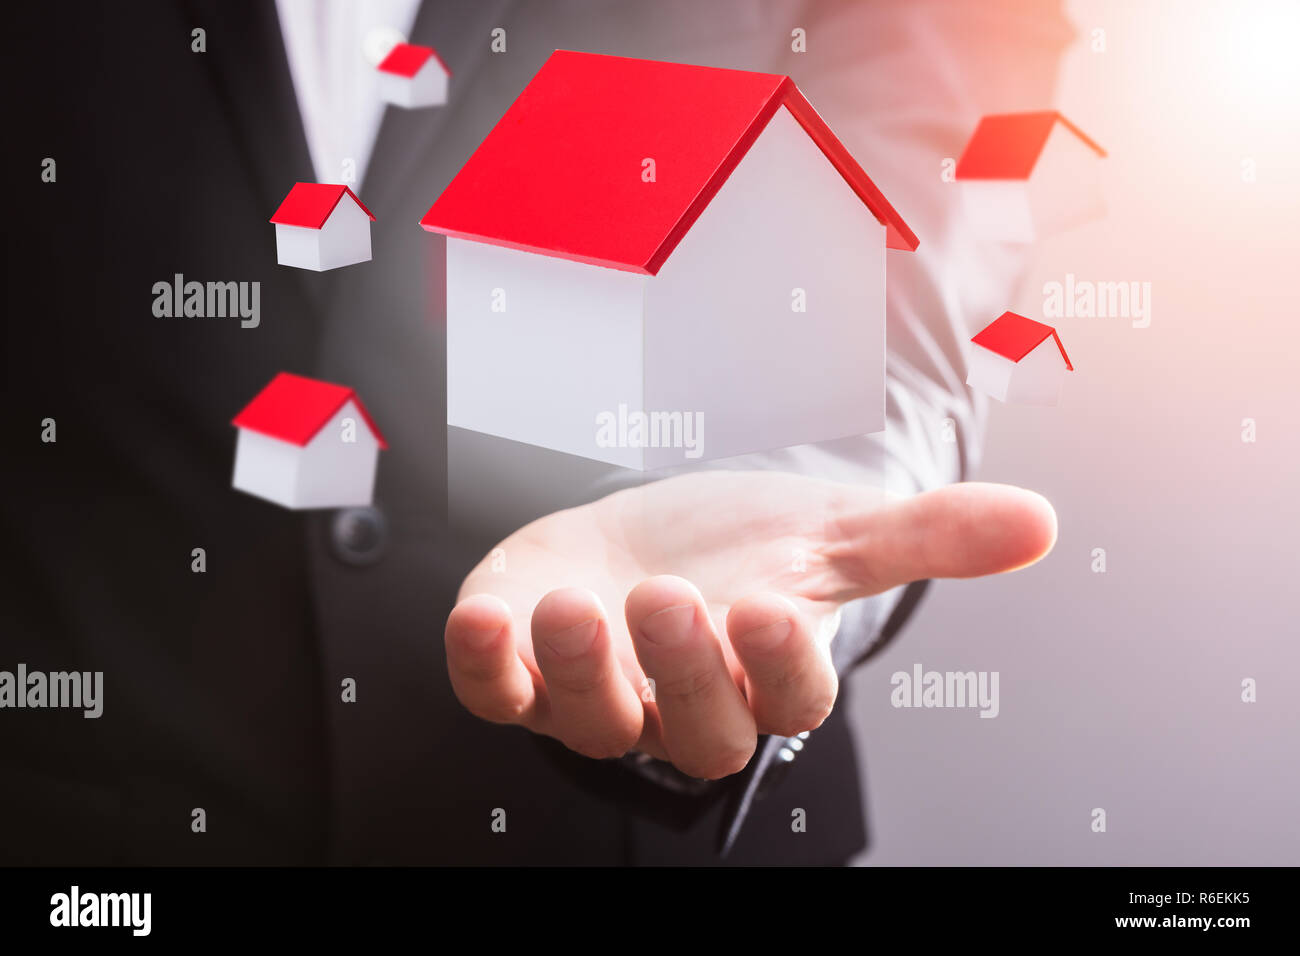 House Models Floating In Mid-air Over Businessperson's Hand - Stock Image